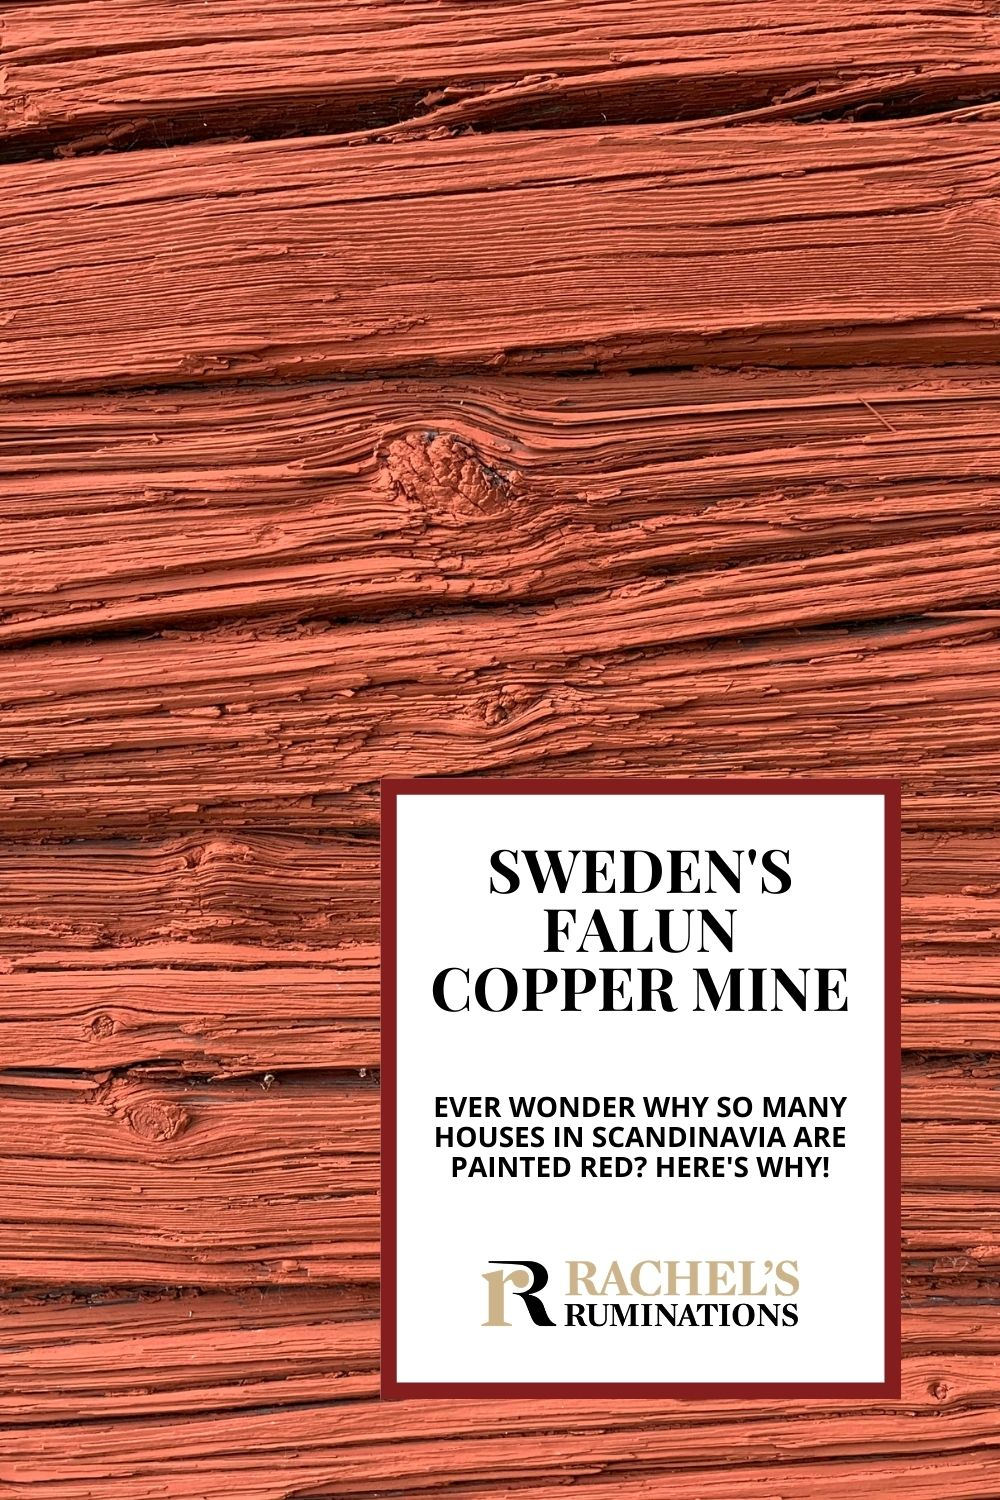 Falun Copper Mine UNESCO site in Sweden produced more than 2/3 of all European copper at its height. It's definitely worth taking the underground tour, visiting the museum, and taking a stroll through the charming town. Also, learn why so many houses in Scandinavia are painted red! via @rachelsruminations